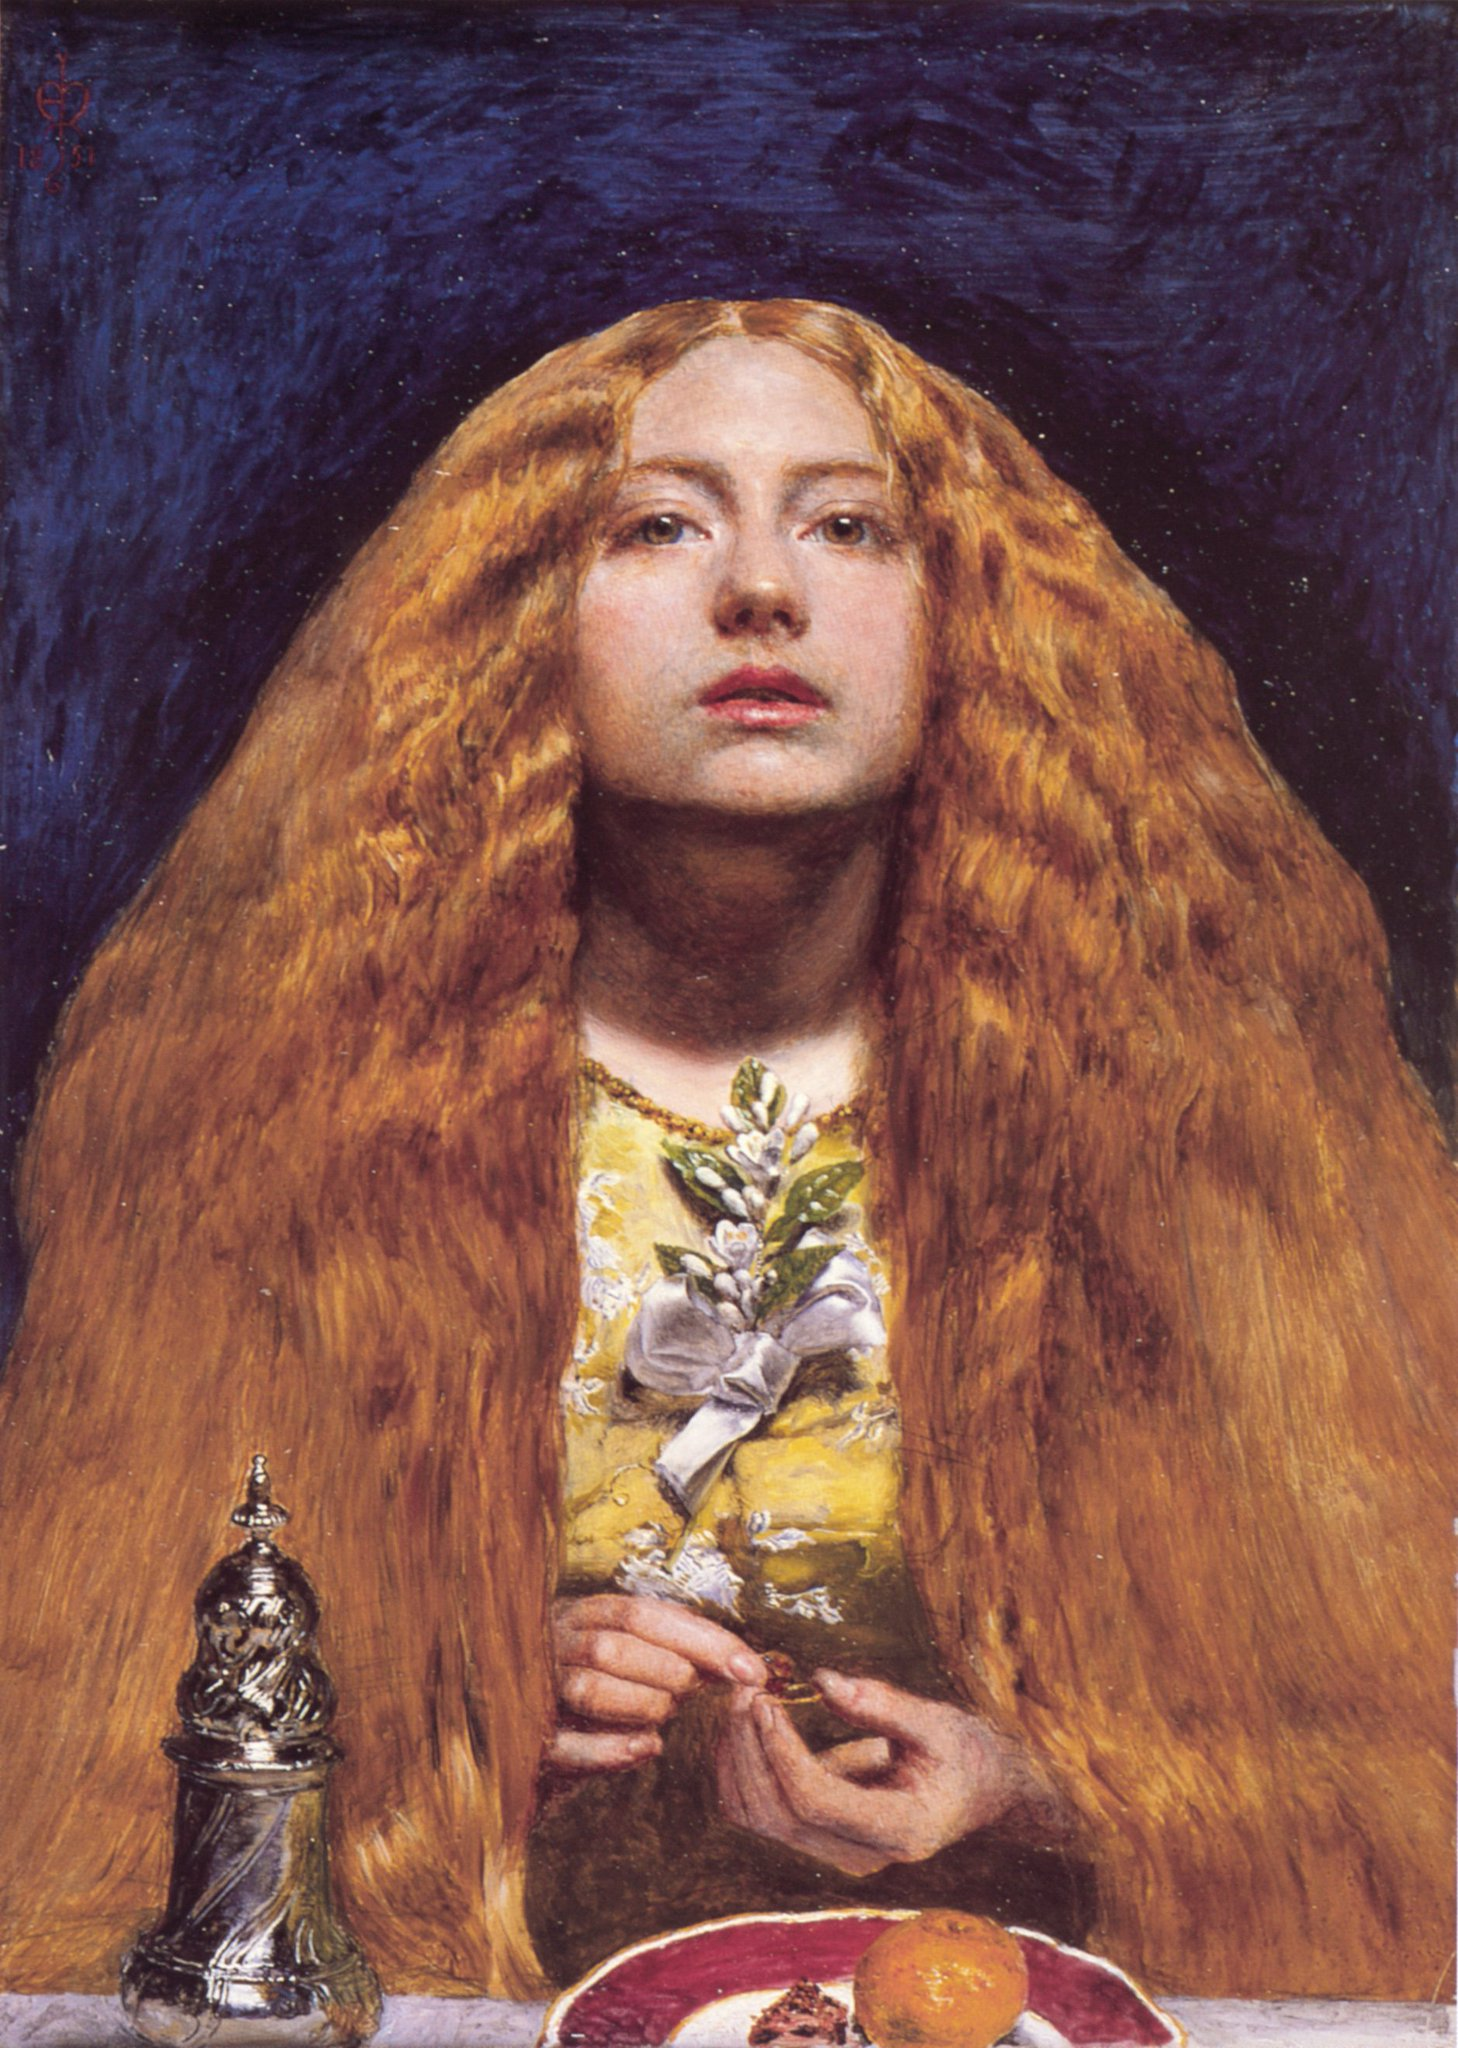 """RT @RealGDT: John, Everett Millais. English. Pre-Raphaelite. His art became immensely popular. Was often branded a """"sellout"""" https://t.co/2…"""